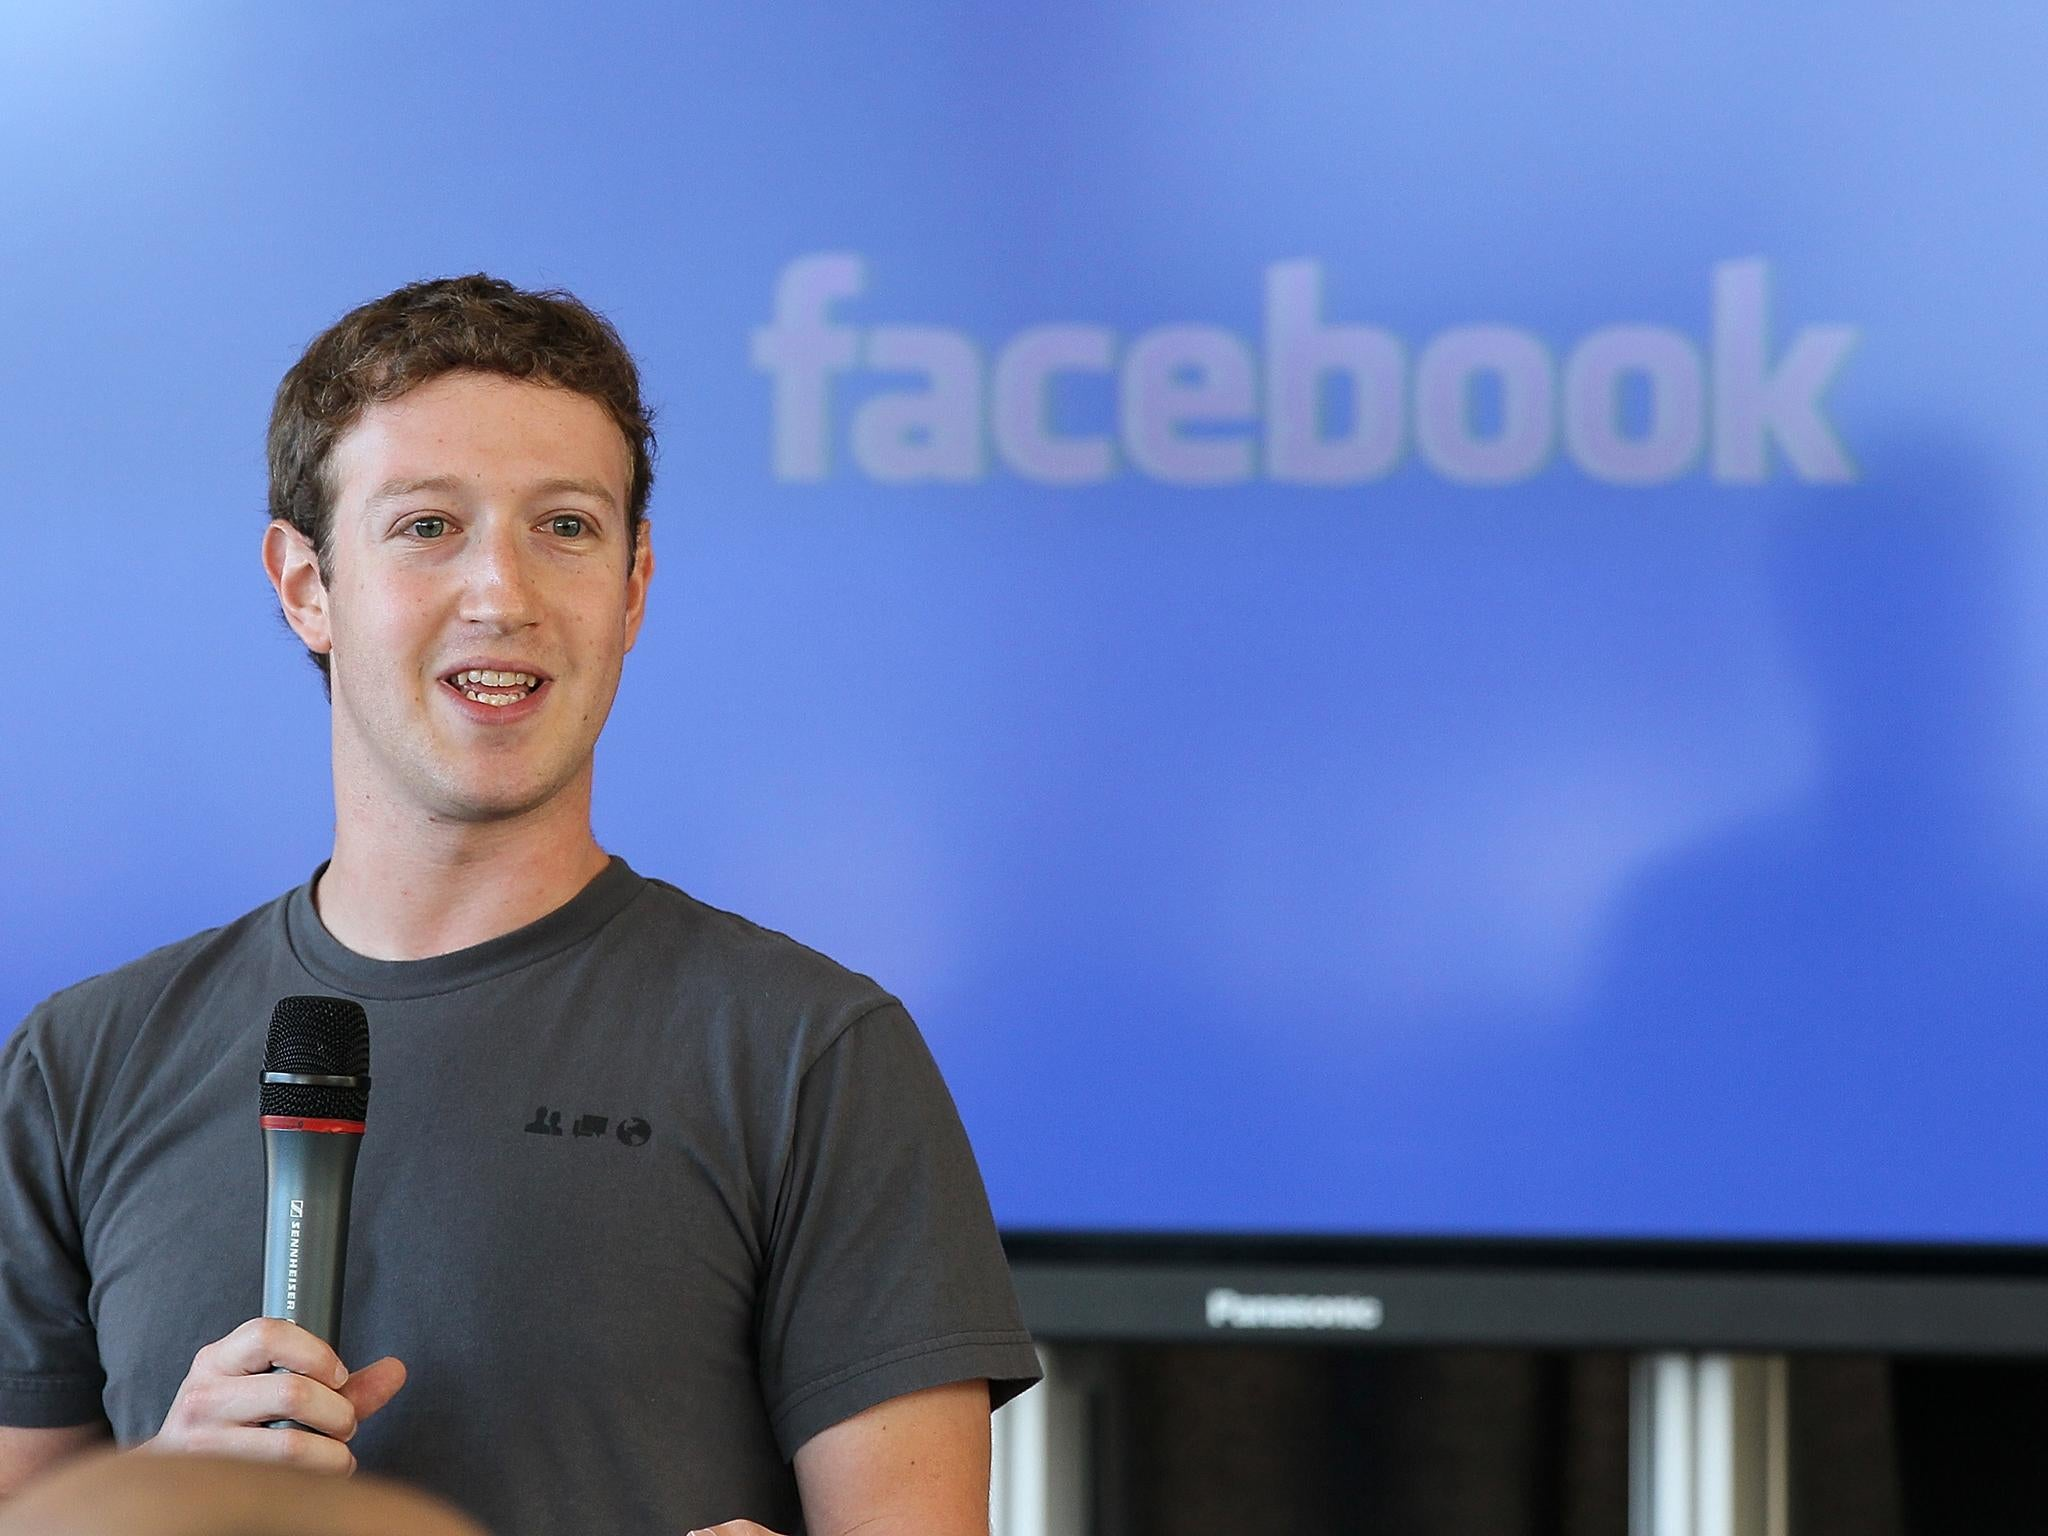 Facebook hoaxes didn't affect US election because they came from both sides, says Mark Zuckerberg